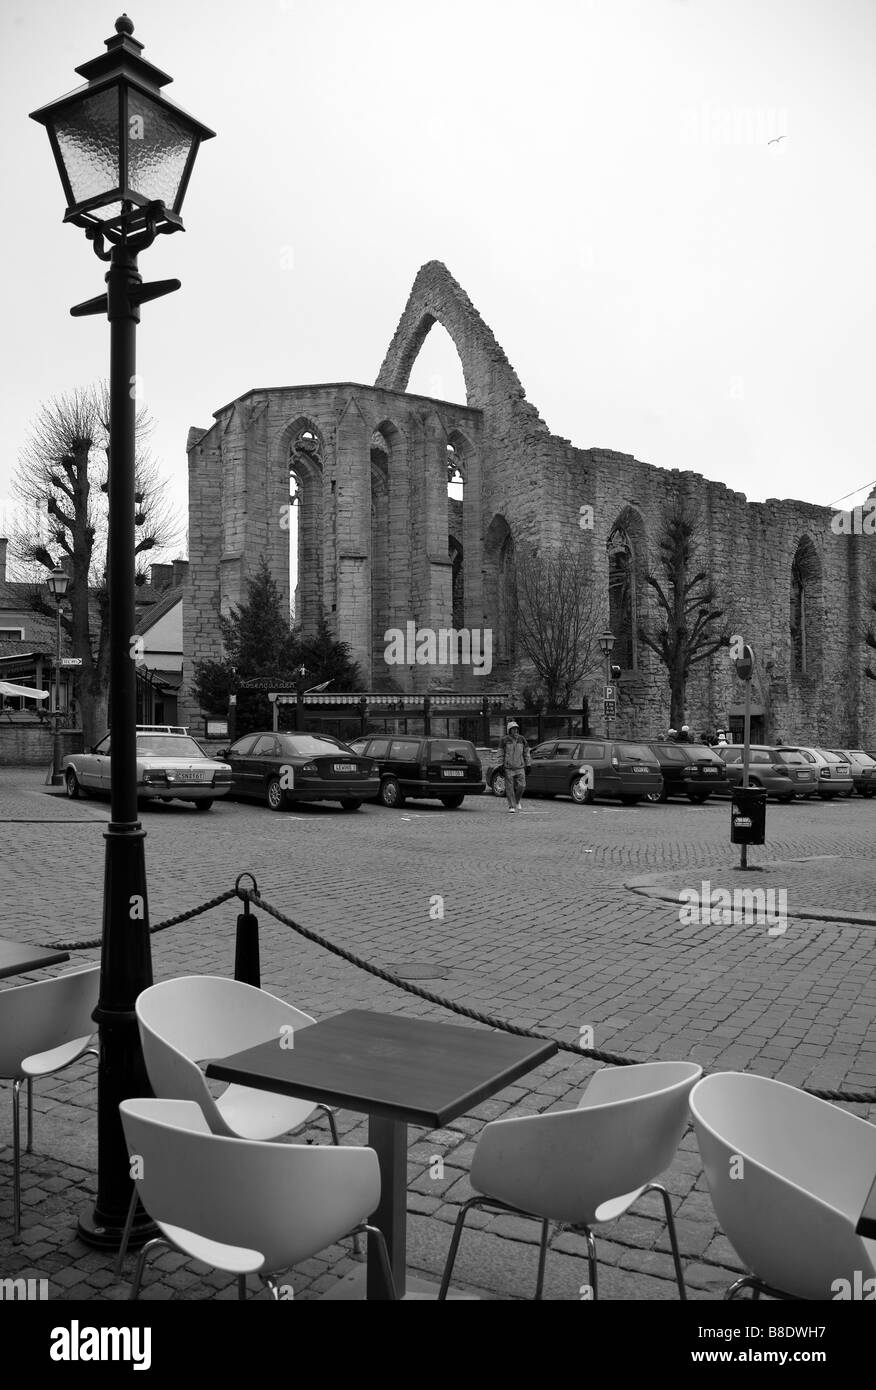 Old church ruins in in Visby, Gotland, Sweden - Stock Image